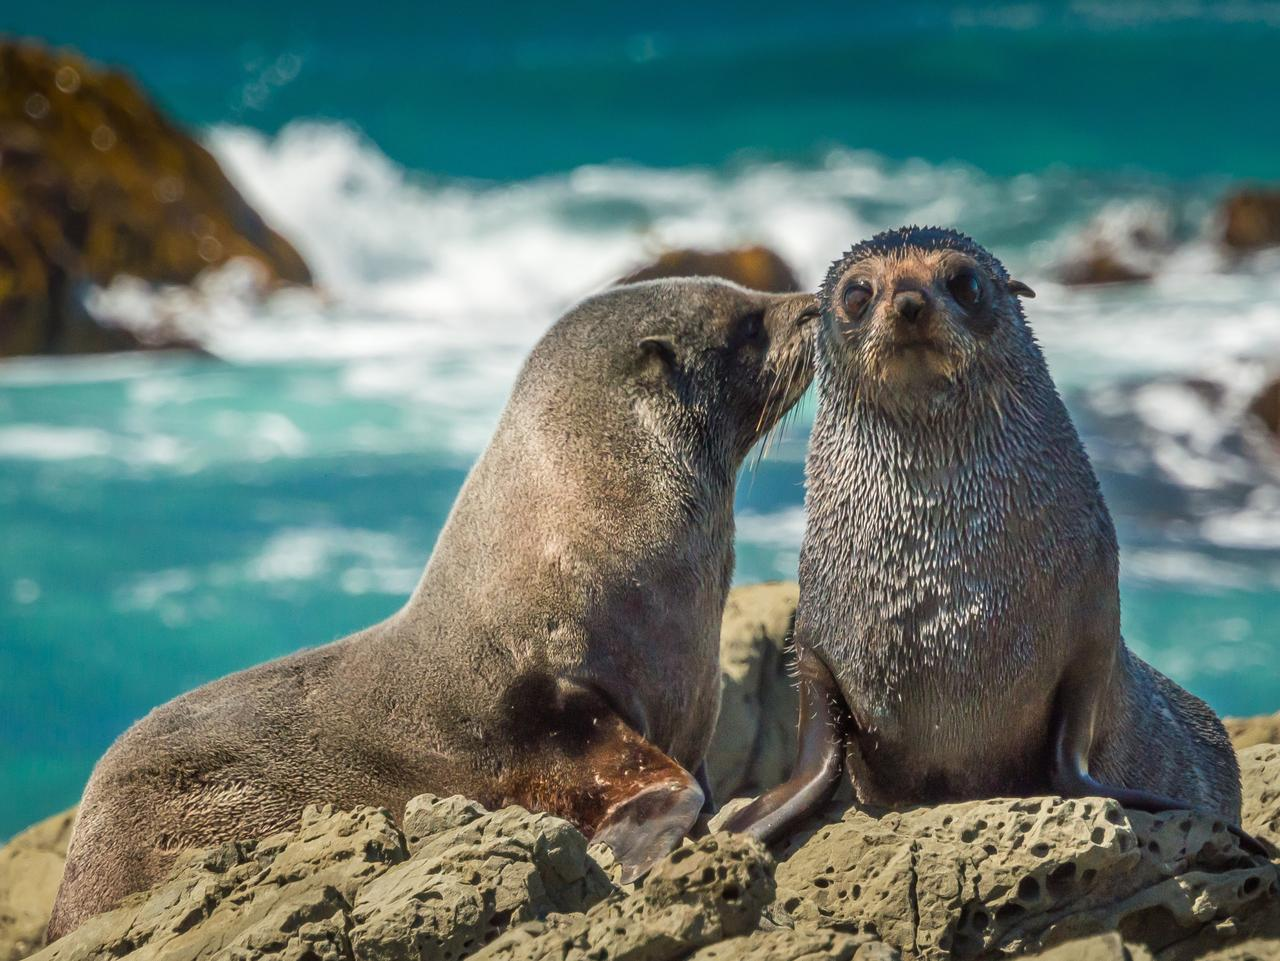 Mother fur seal kissing newborn young